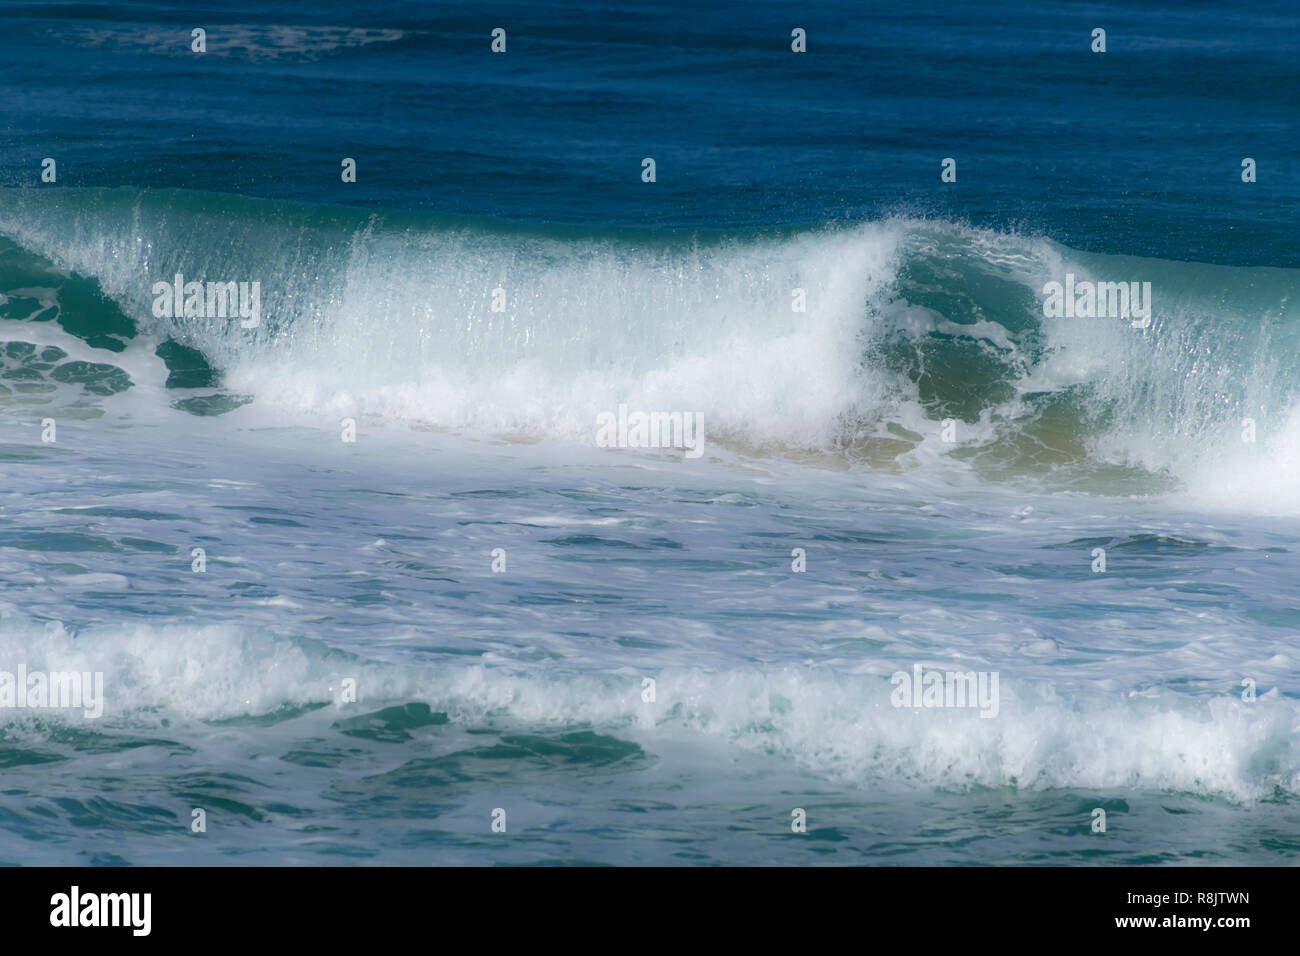 Foam waves running onto the shore. Mediterranean Sea. Israel - Stock Image